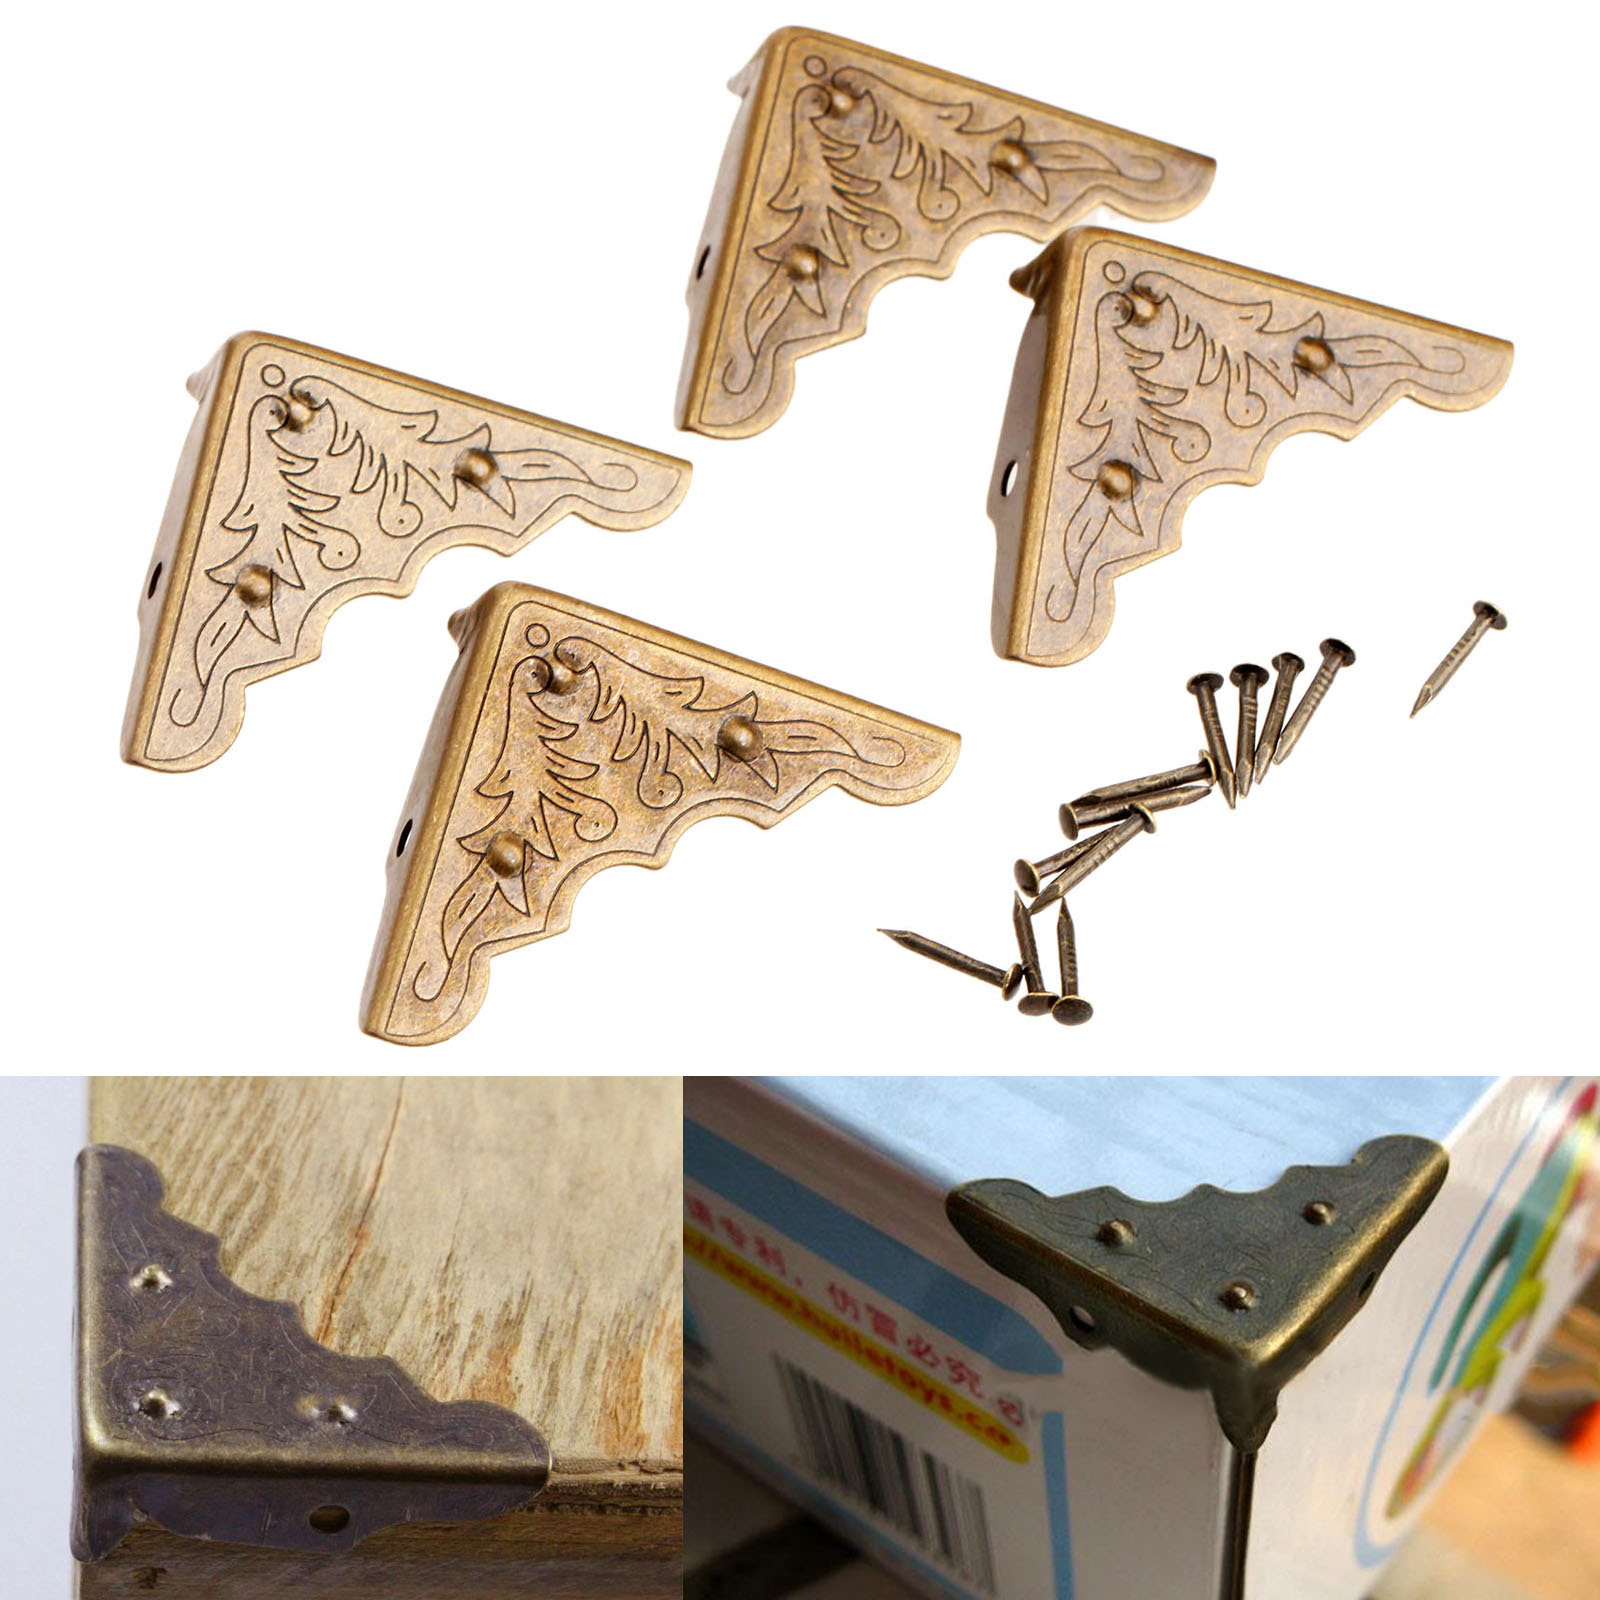 4Pcs Antique Mental Corner Decorative Protector Jewelry Box Gift Wine Chest Box Wood Case Feet Leg Corner Guard for Furniture 12pcs antique metal decorative protective corners jewelry box gift wood case feet leg corner guard for furniture 24 screws